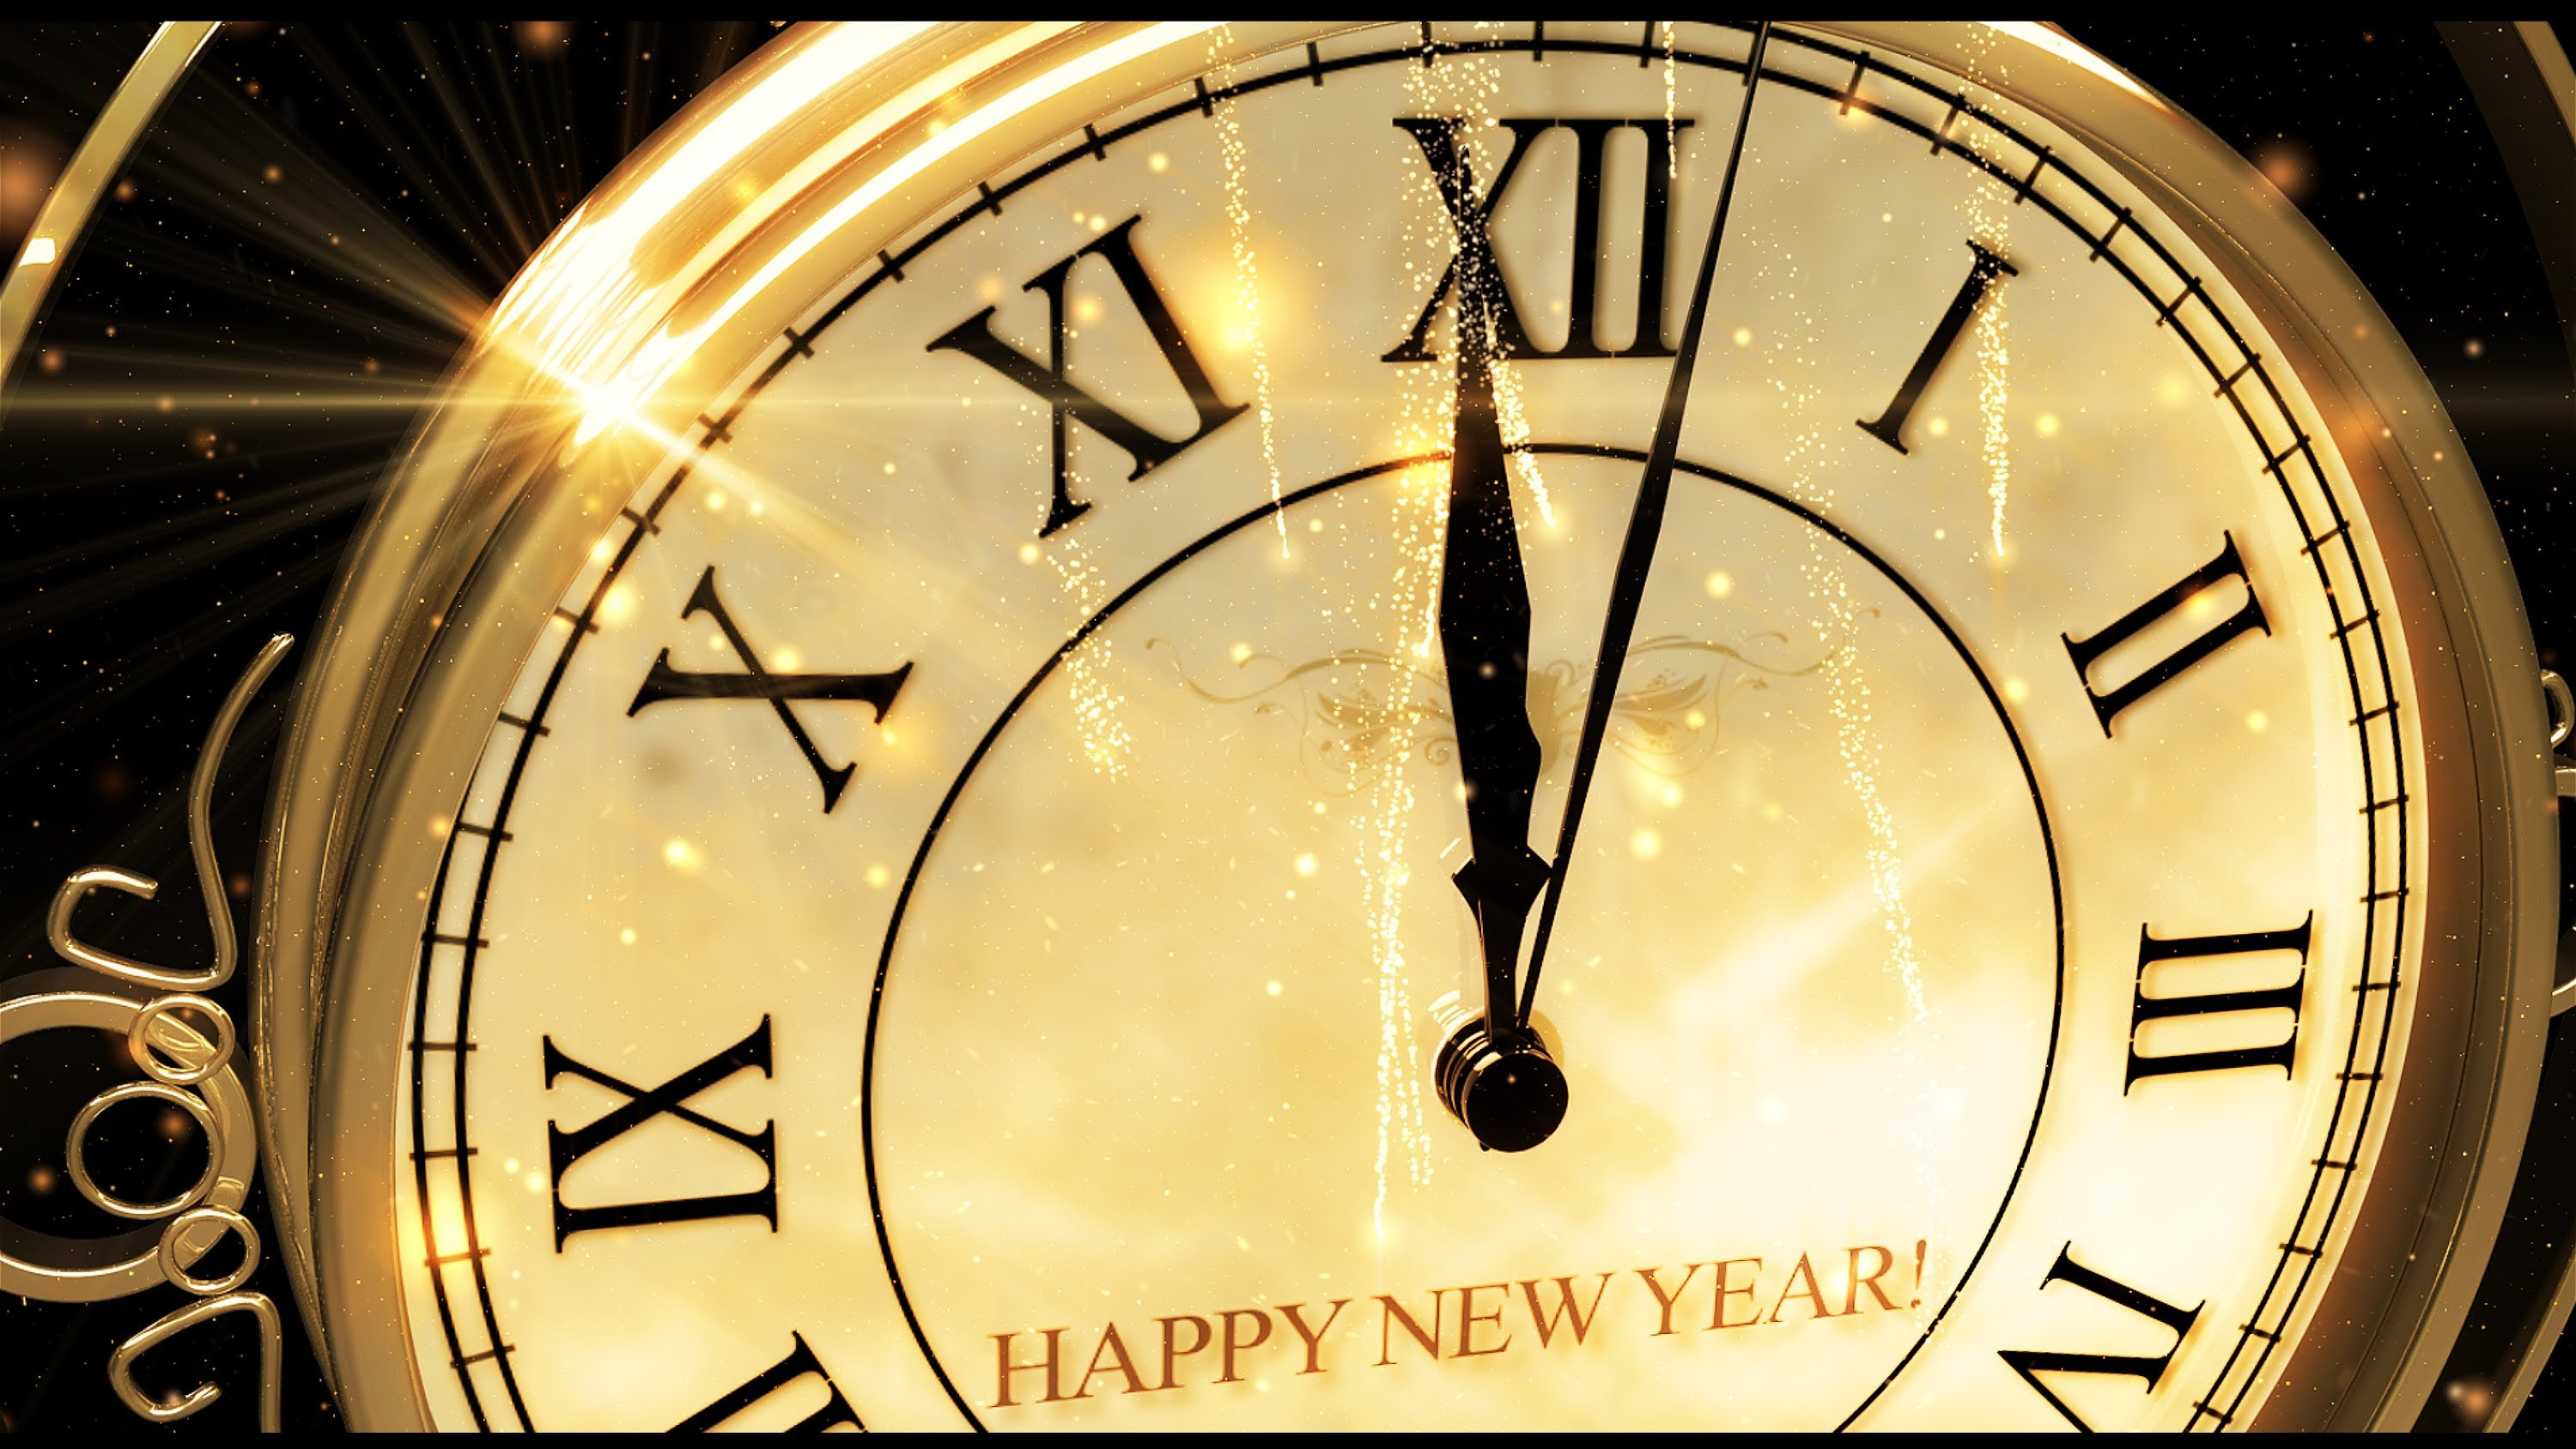 An Even Better New Year's Eve | Good Vibe Blog